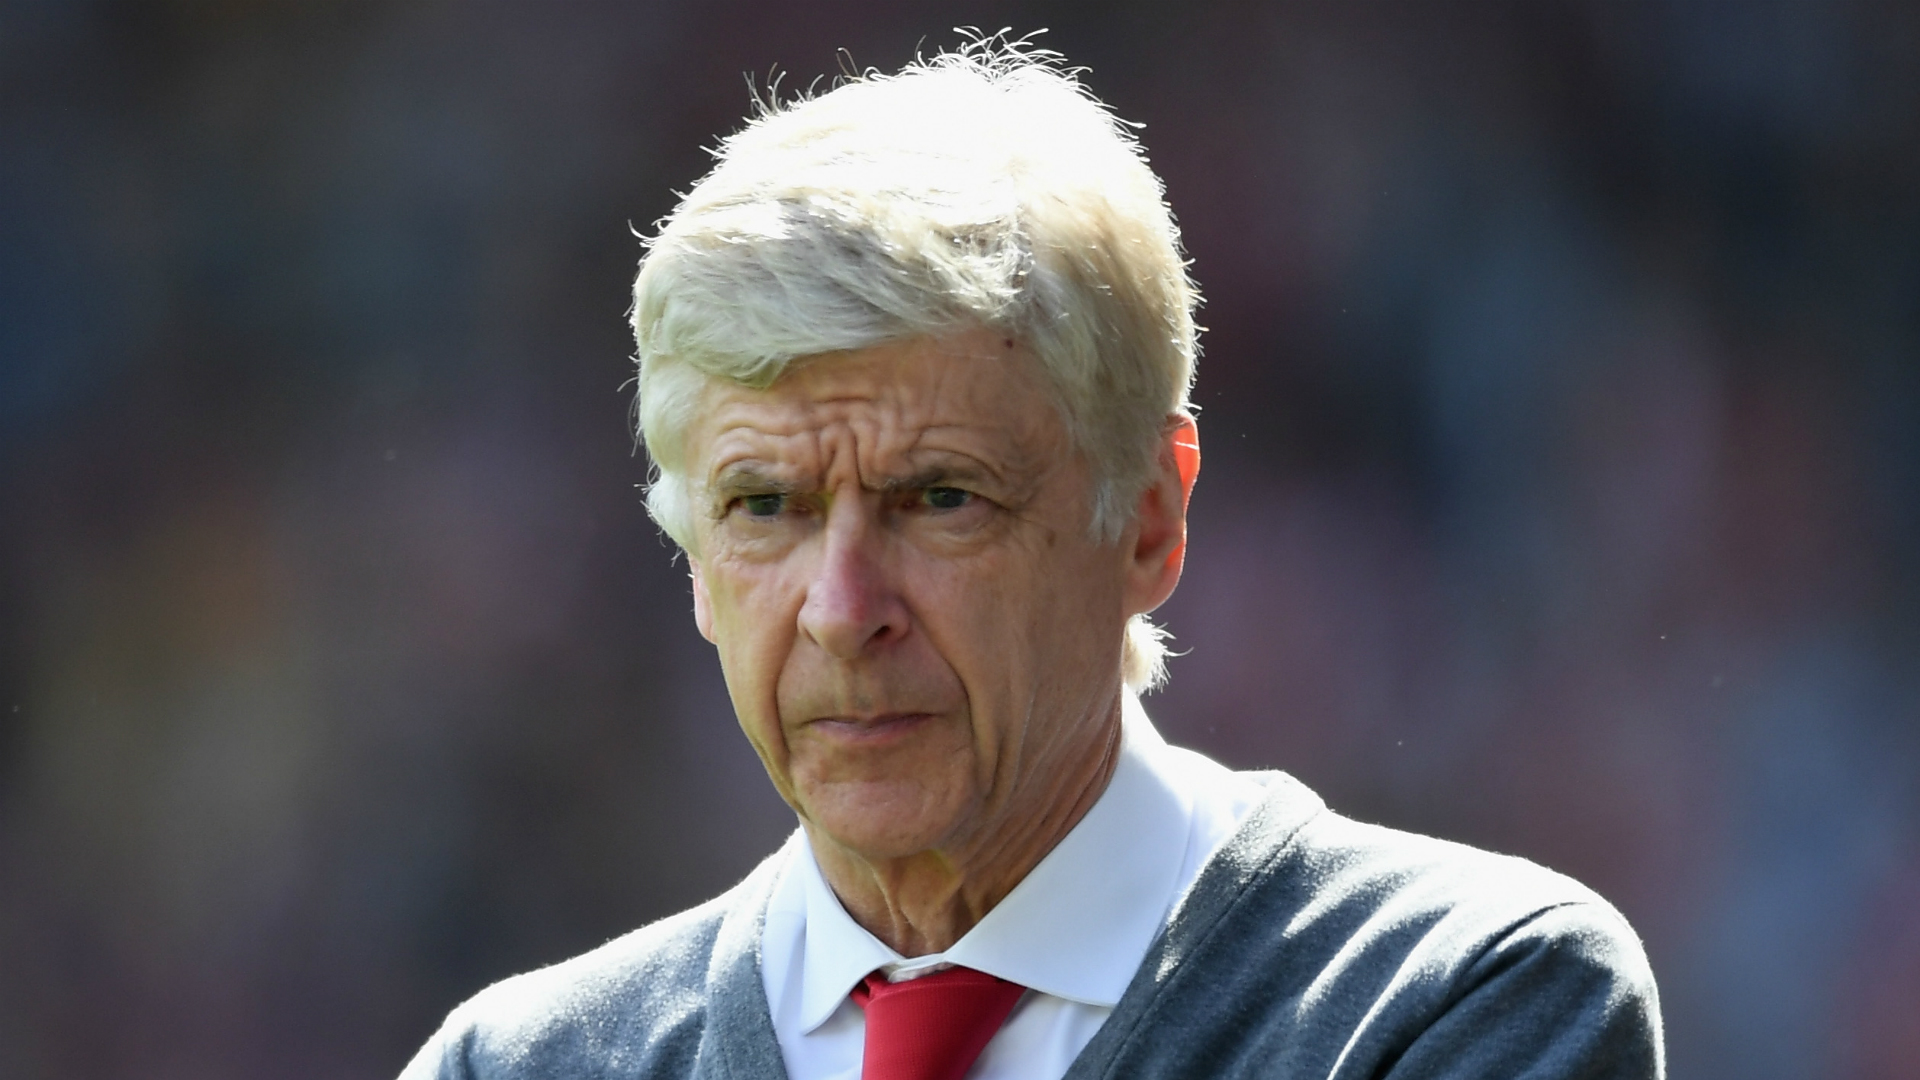 'Maybe I stayed too long' - Wenger admits he could have ended his Arsenal reign sooner